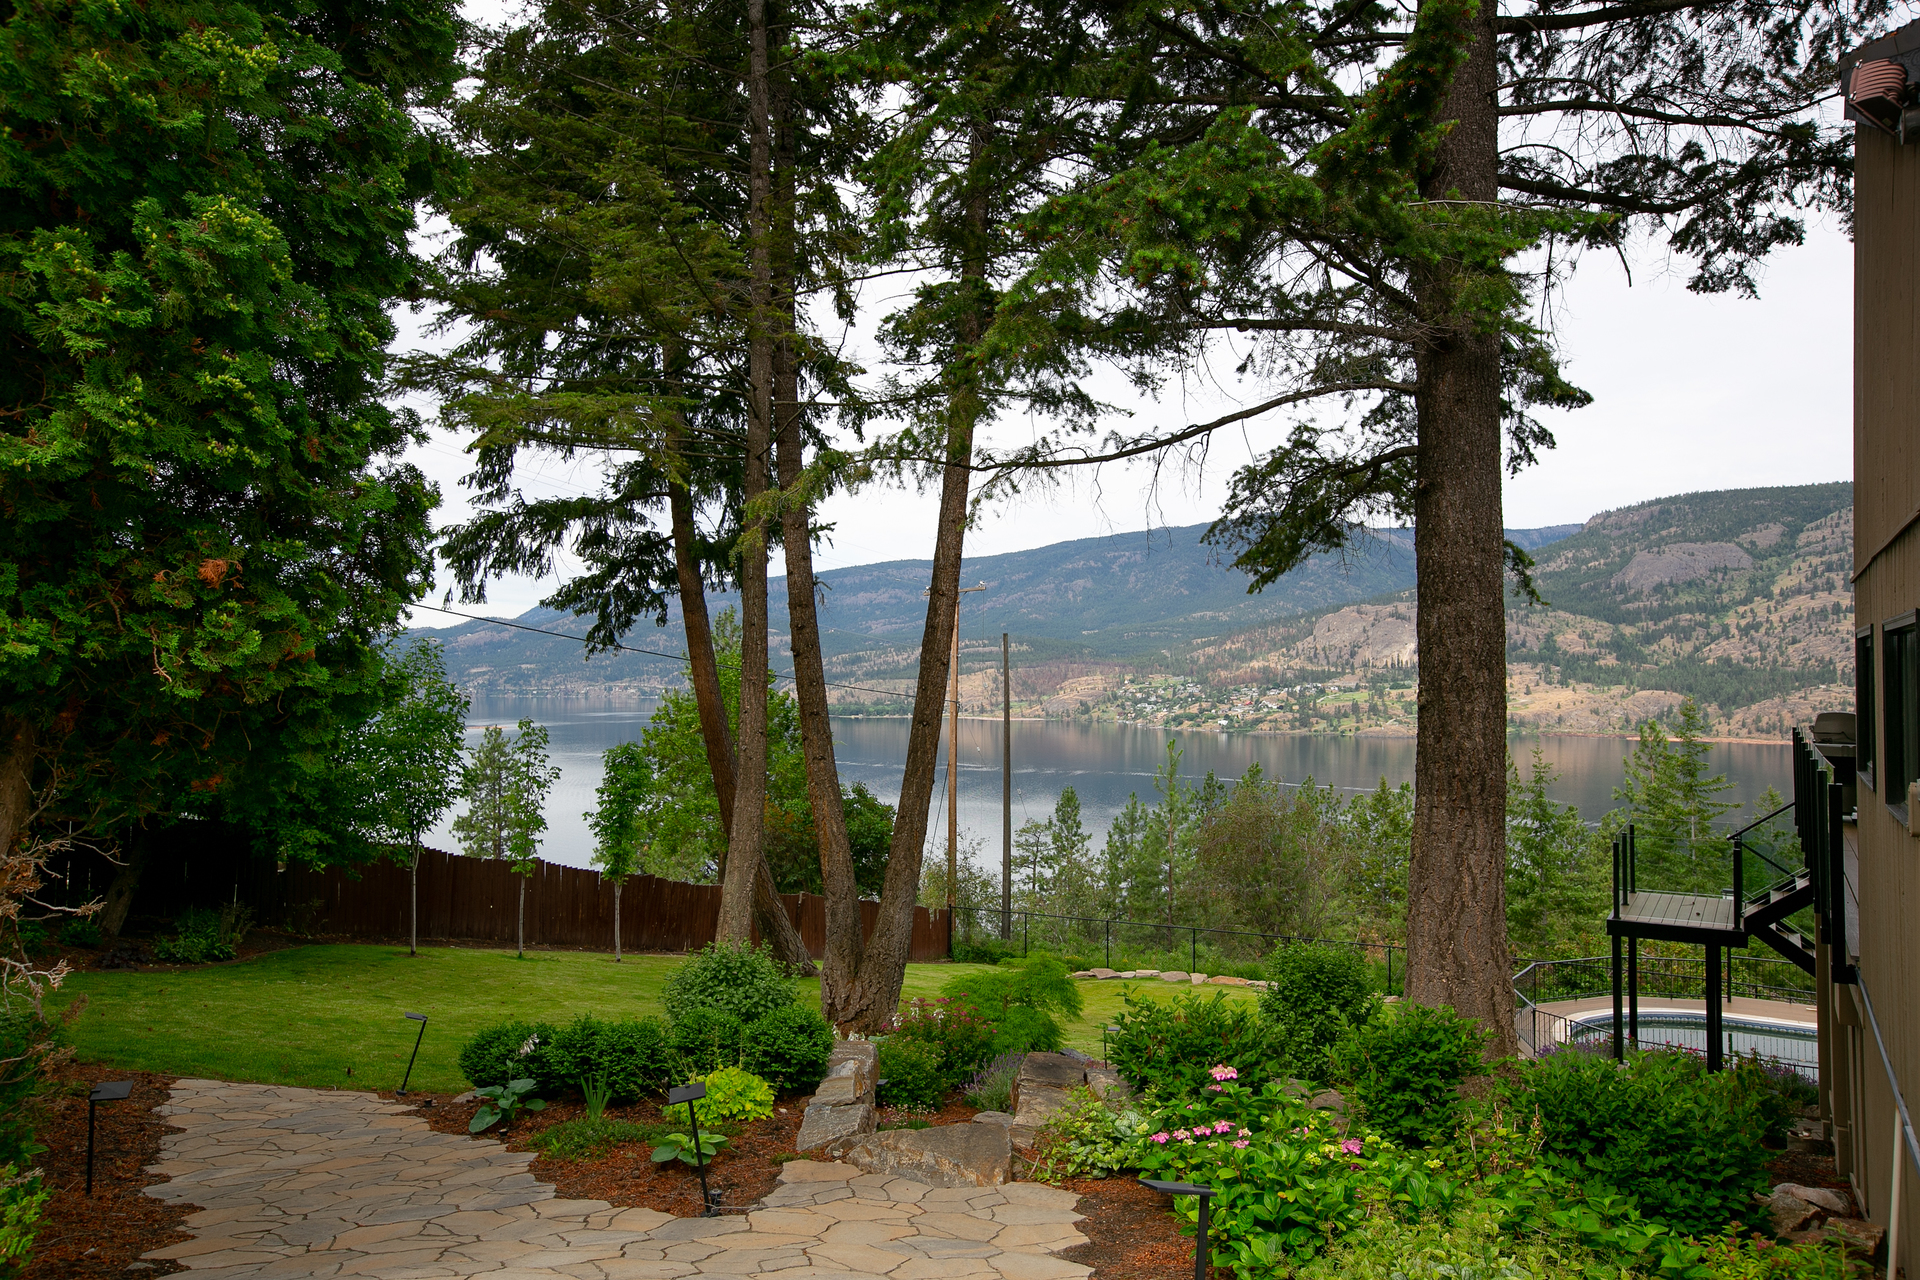 5d3_9279-edit at 312 Clifton Road, Kelowna, Central Okanagan